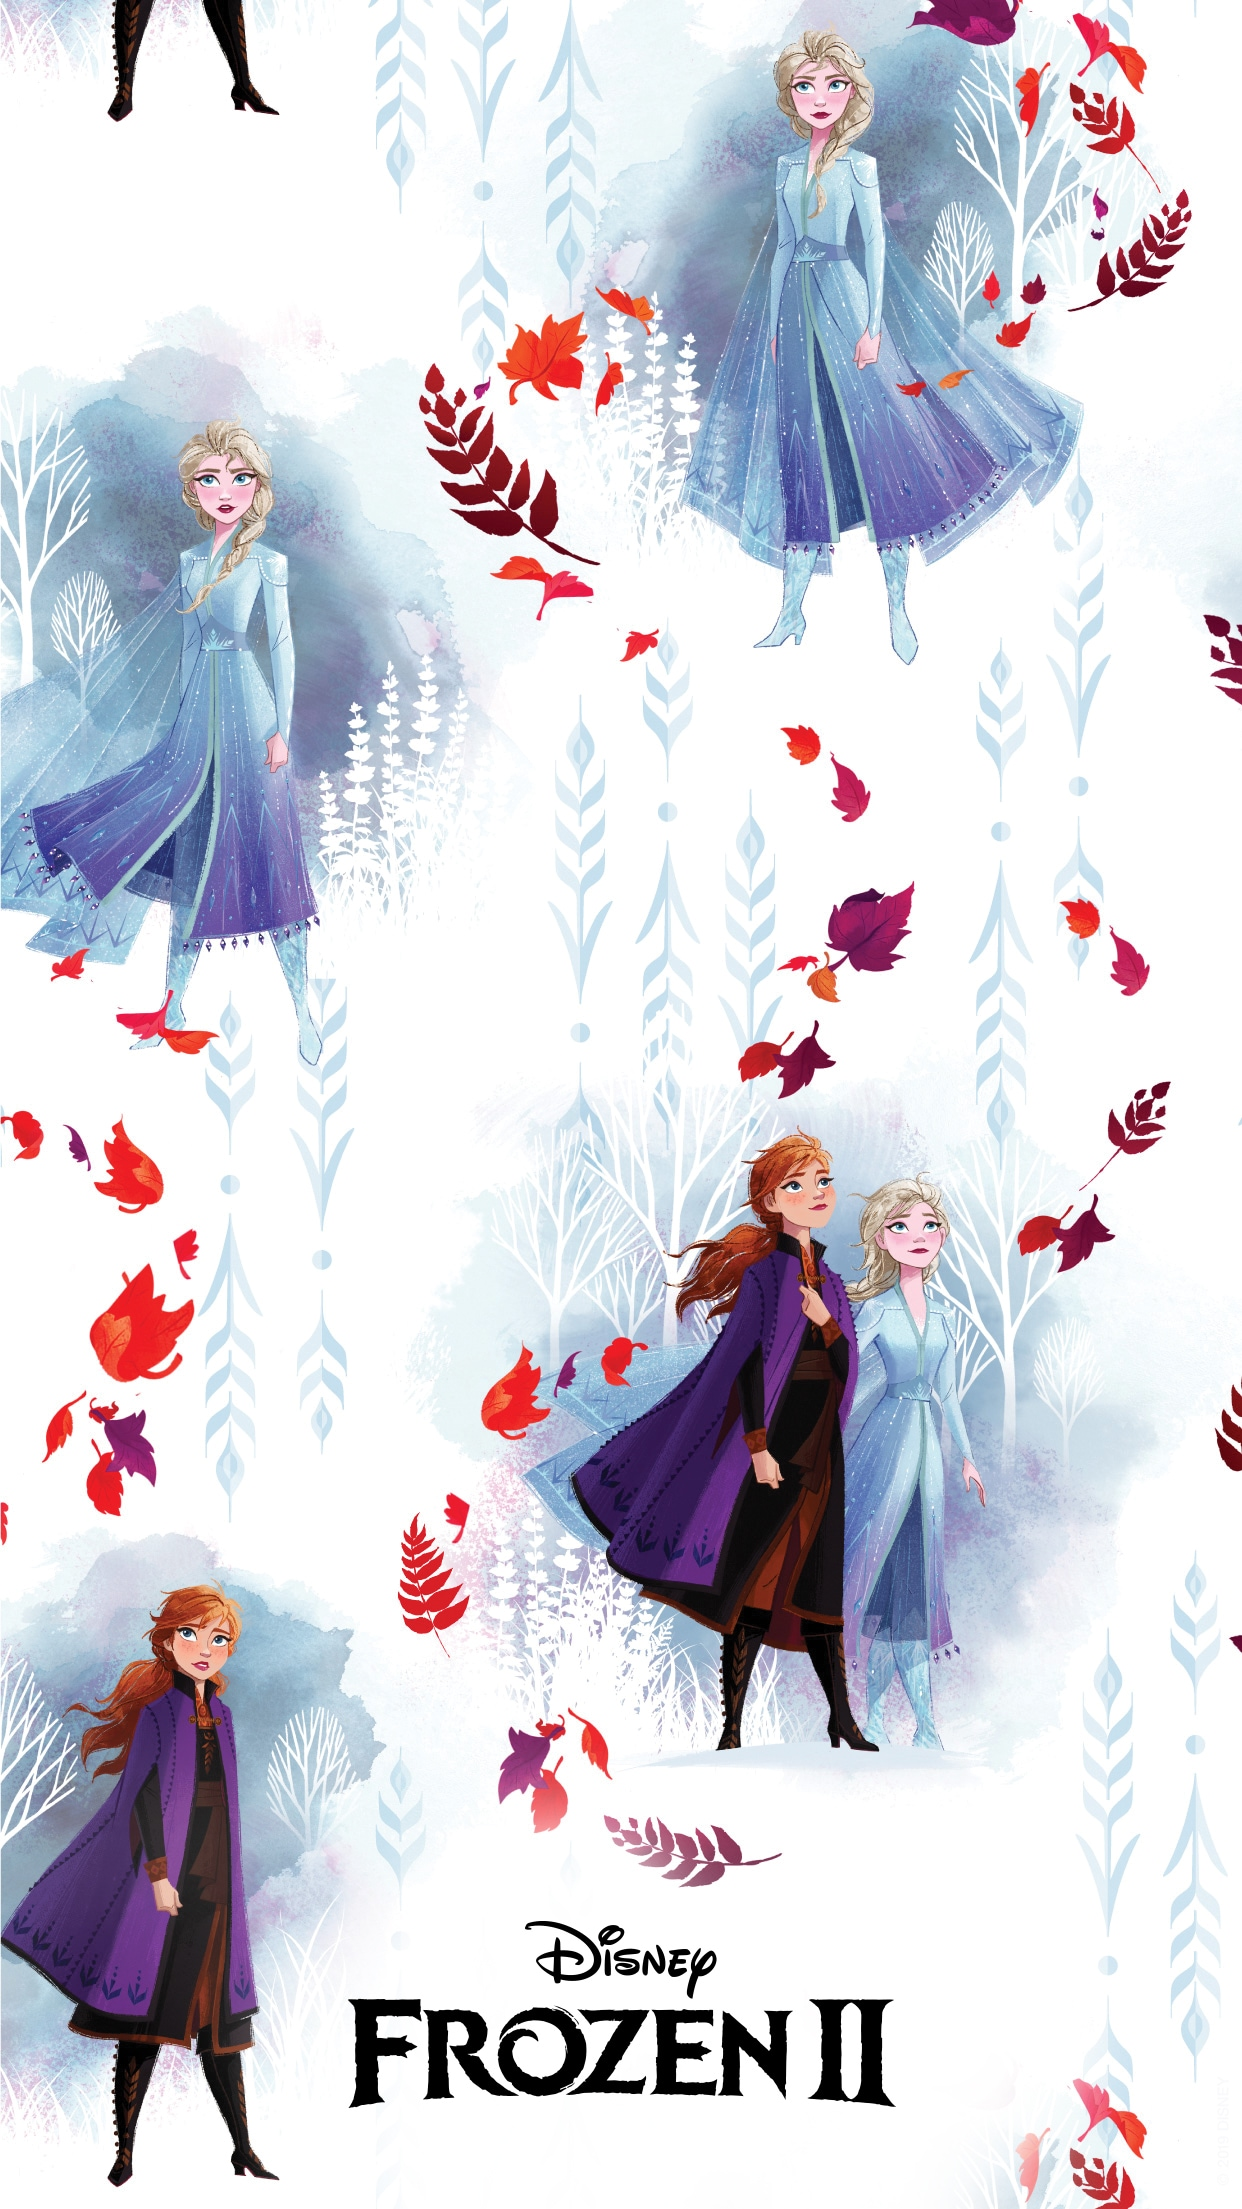 These Disney S Frozen 2 Mobile Wallpapers Will Put You In A